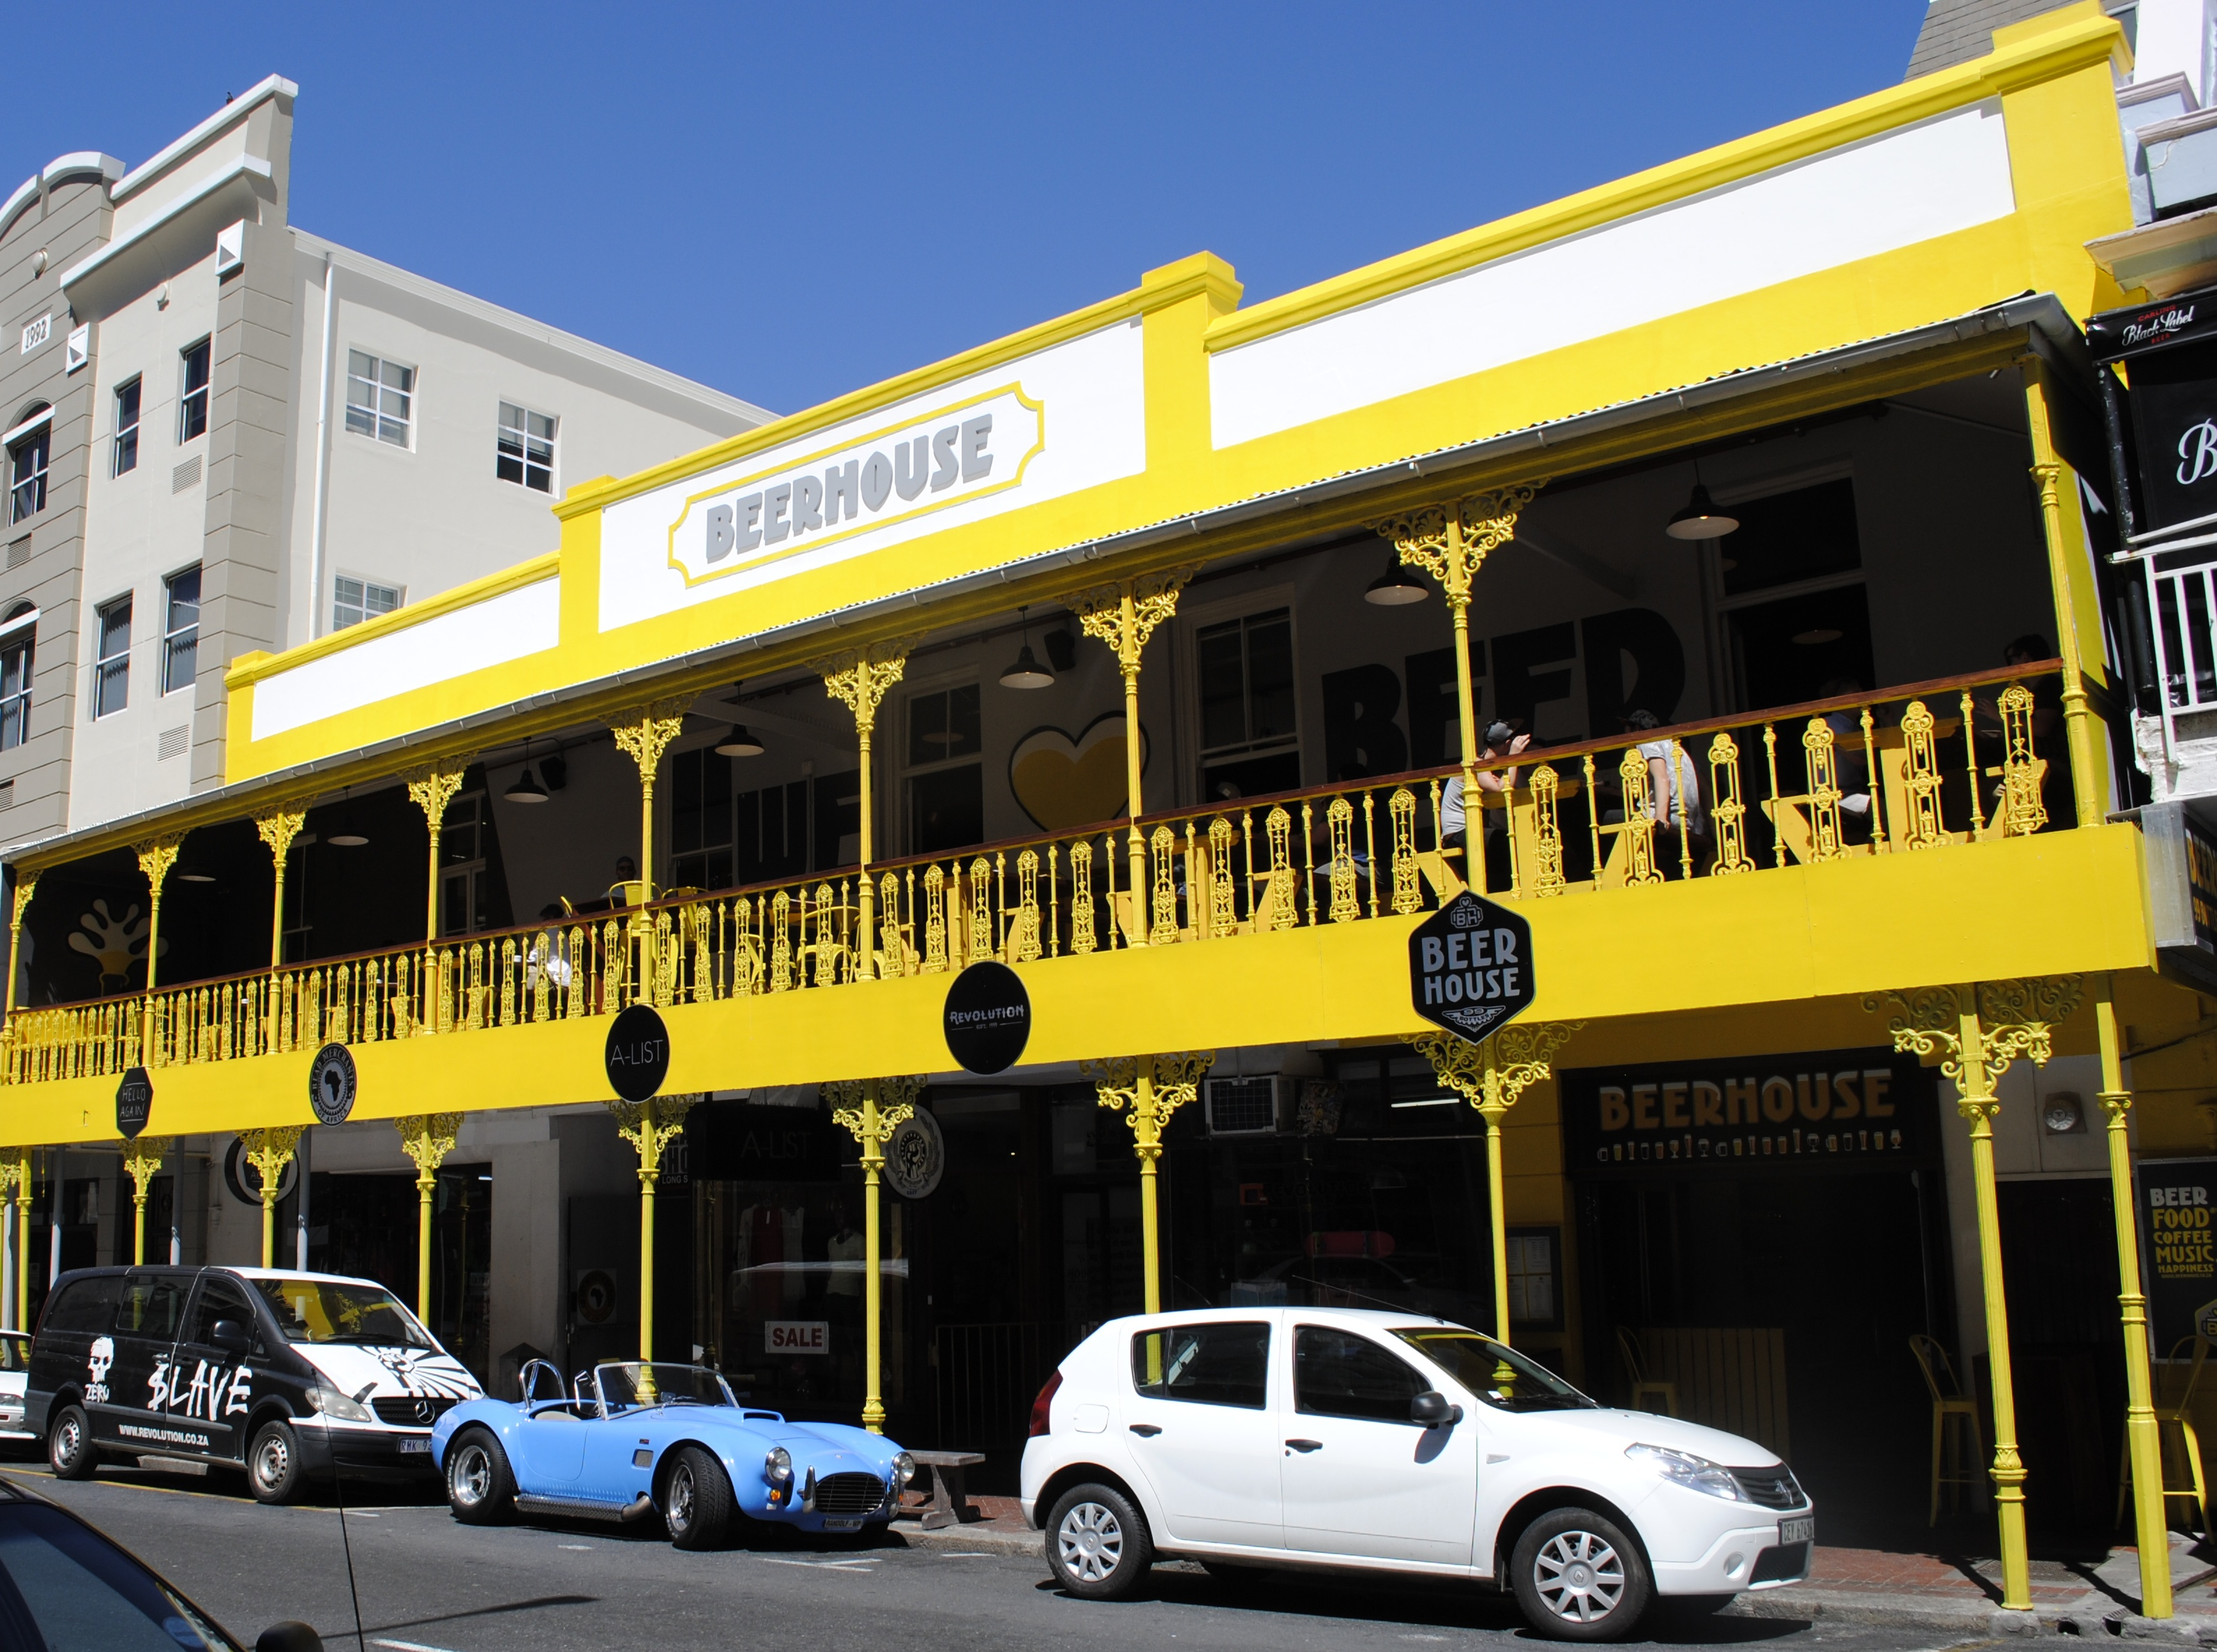 Beerhouse outside shot A Beer Lover's Guide To The Best Beer Bars And Breweries In Cape Town